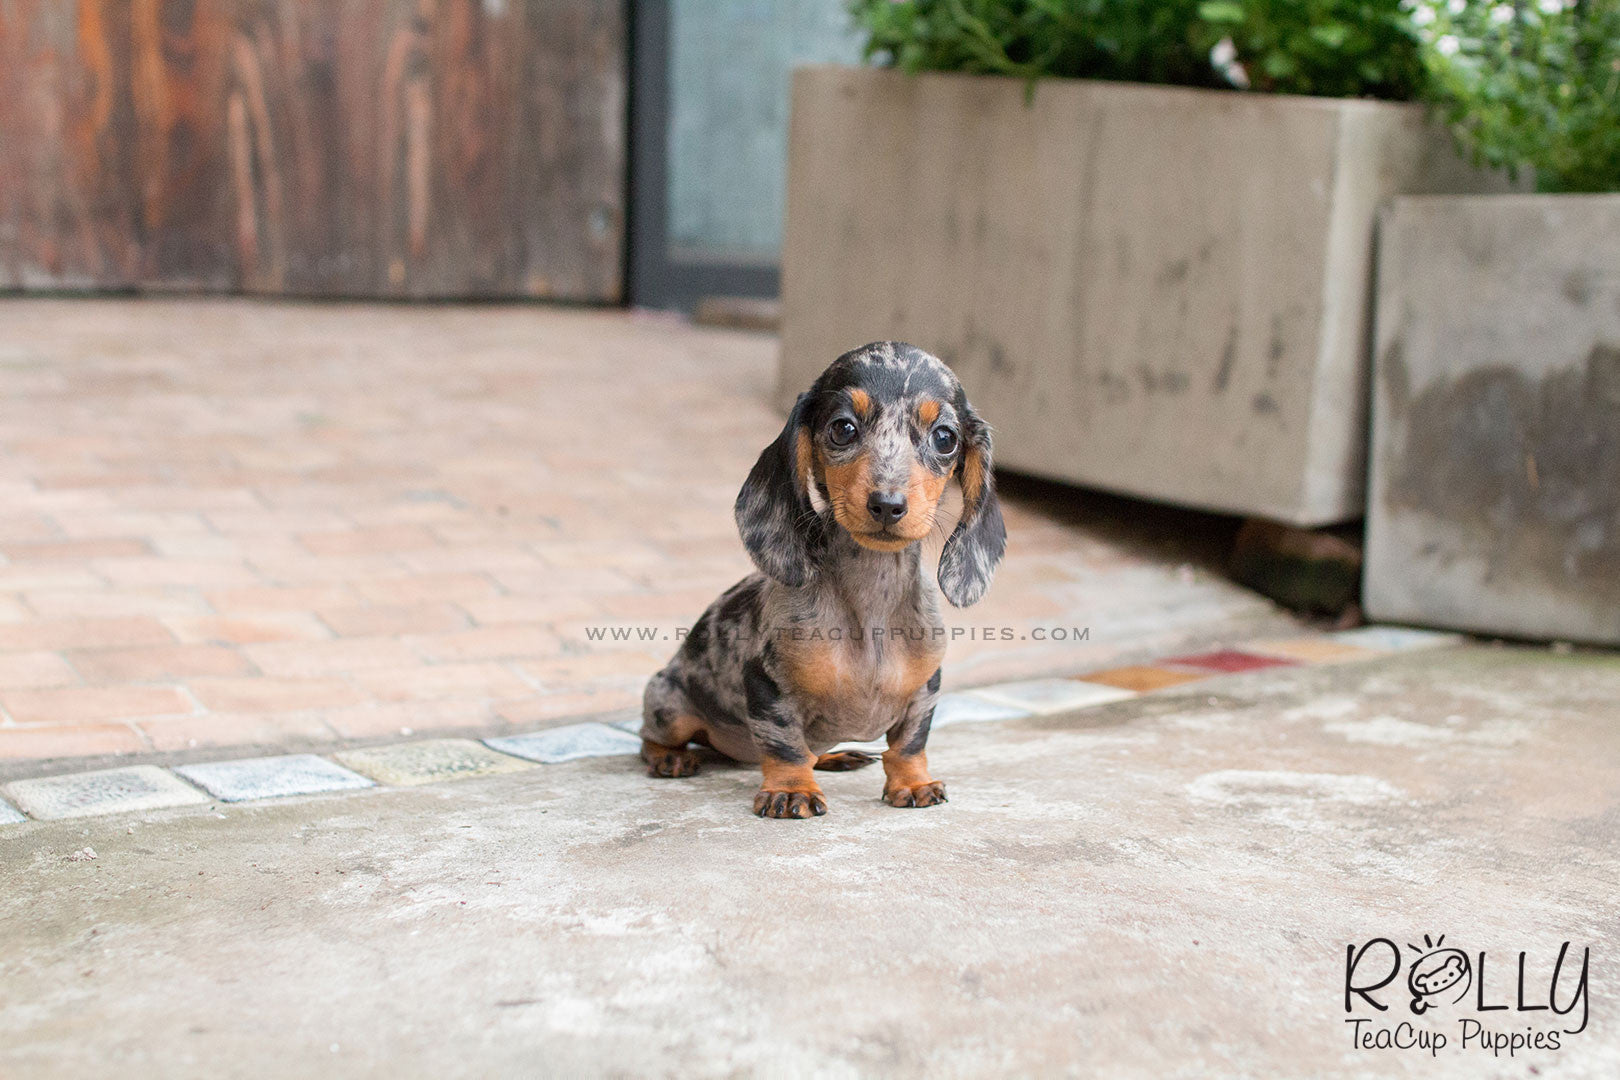 Betty Dachshund Rolly Teacup Puppies